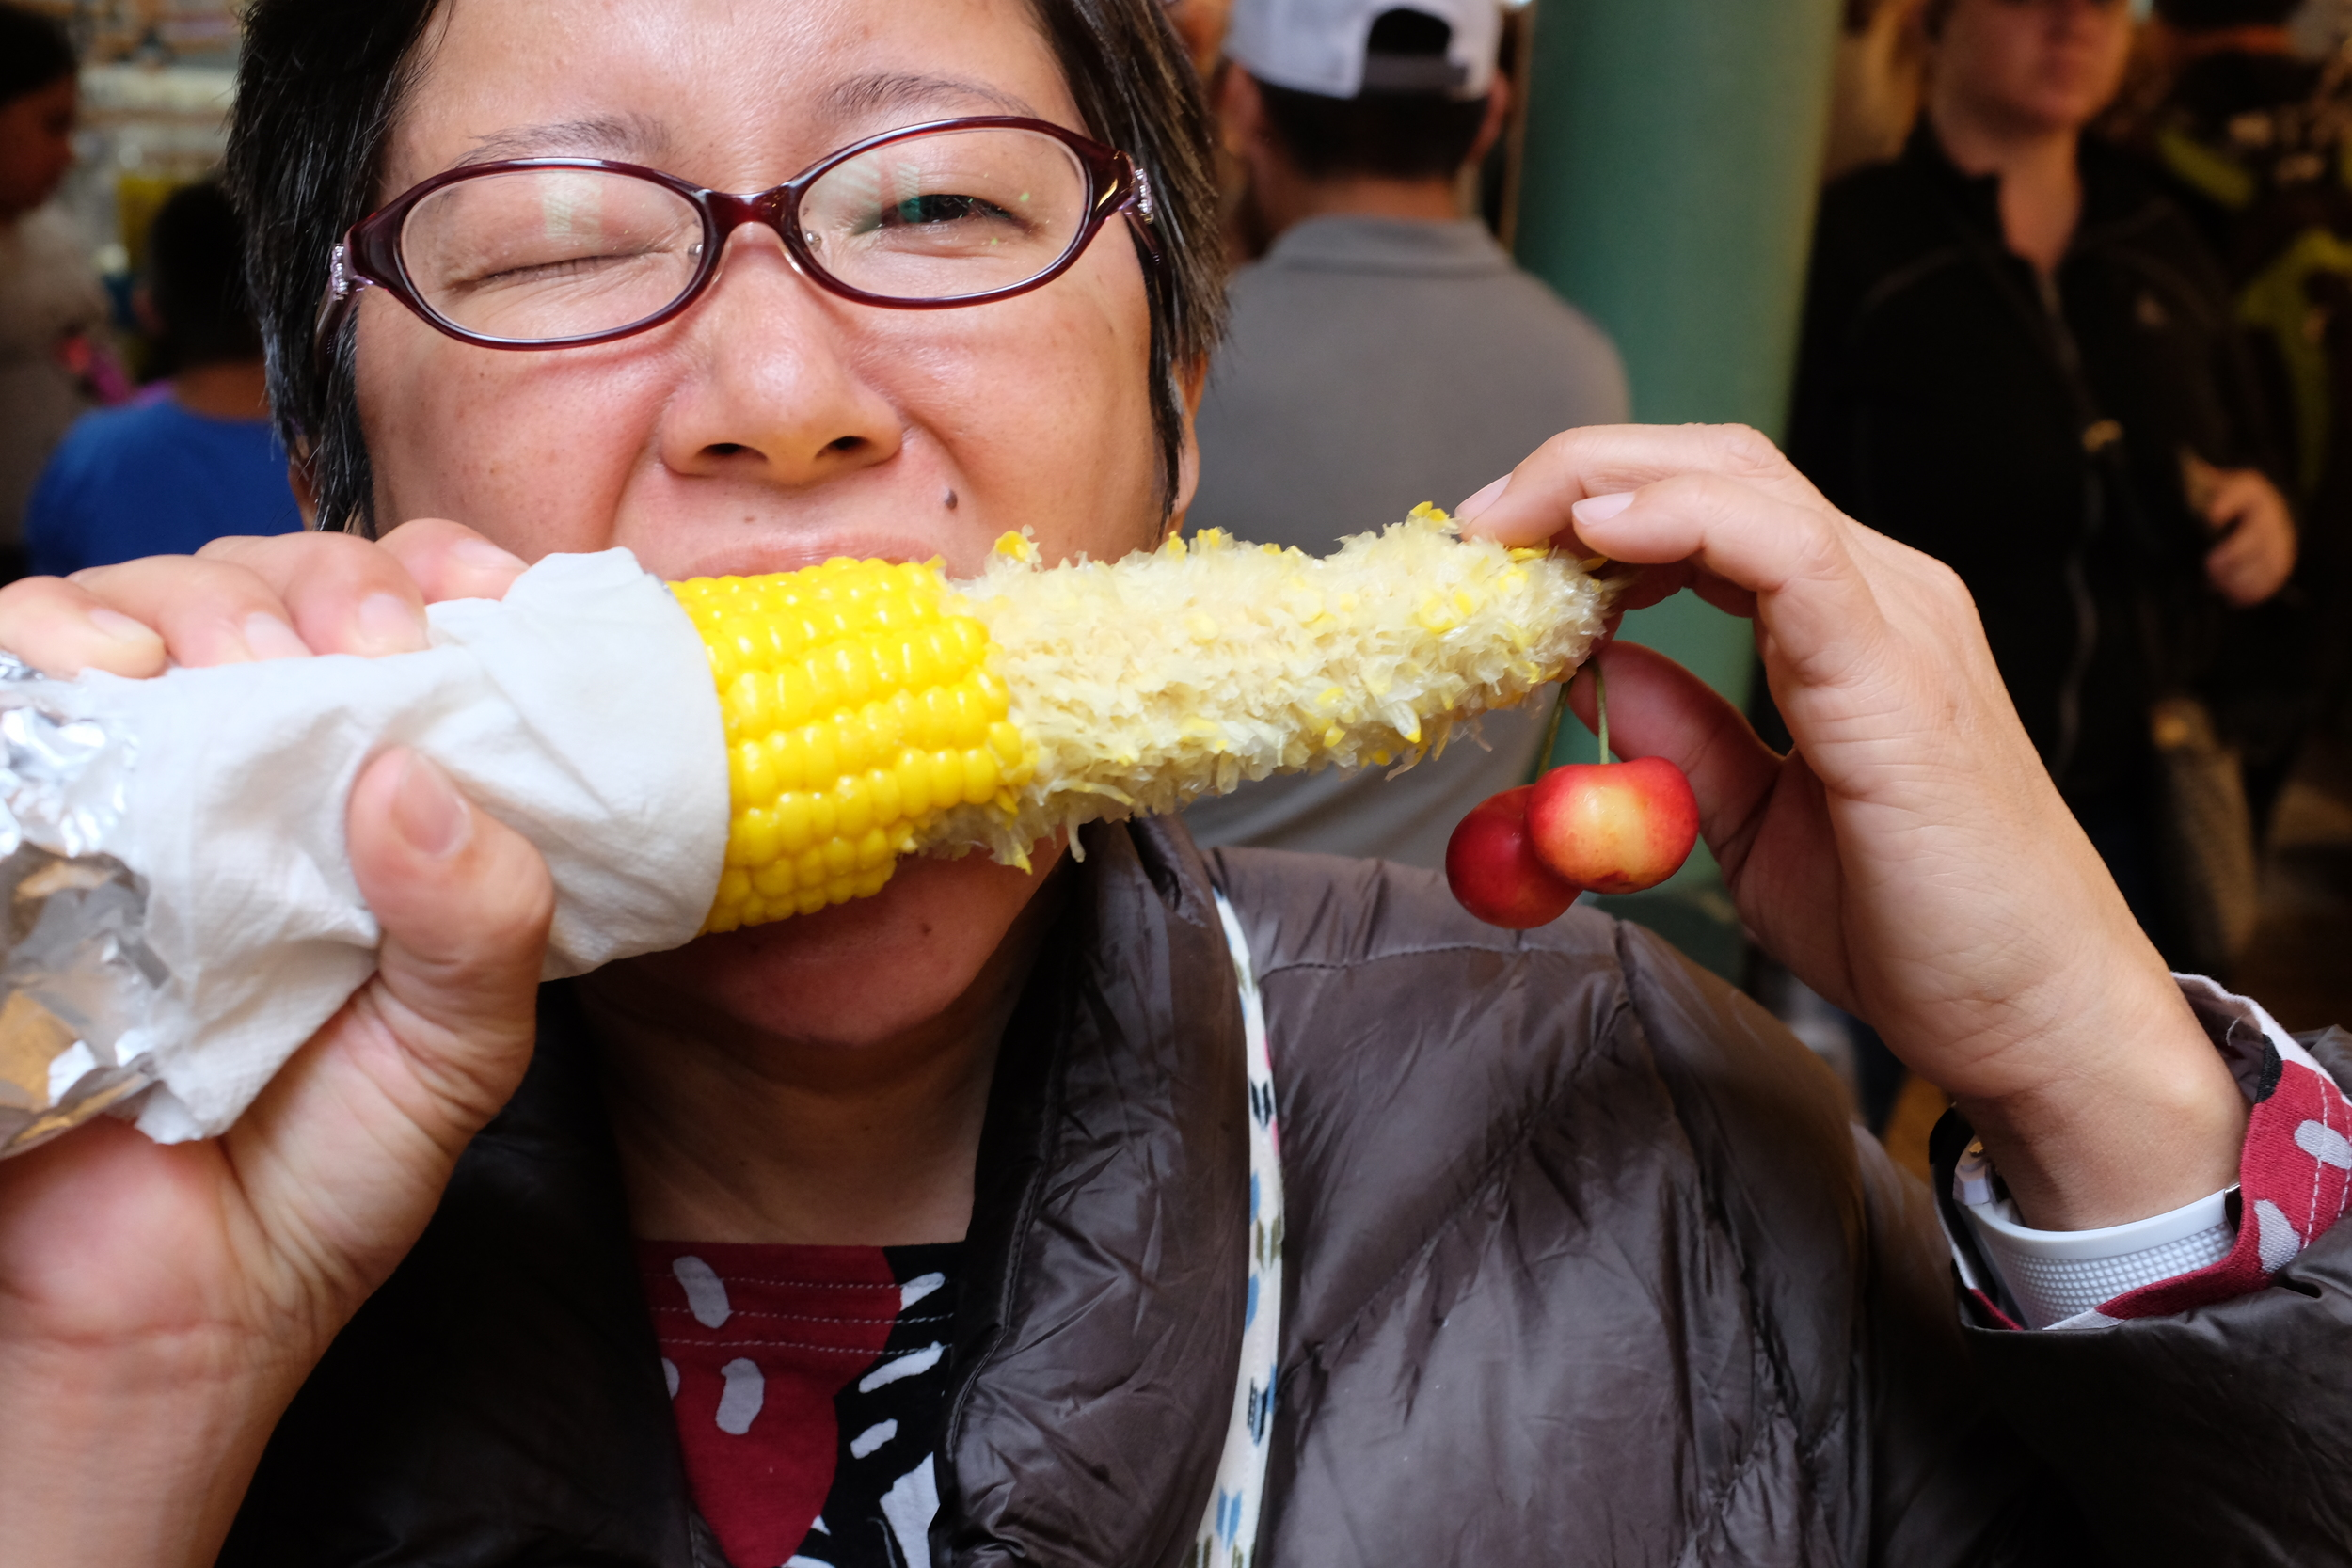 Eating roasted corn while holding Rainier cherries at the same time. (?)  Photo by Shishido.